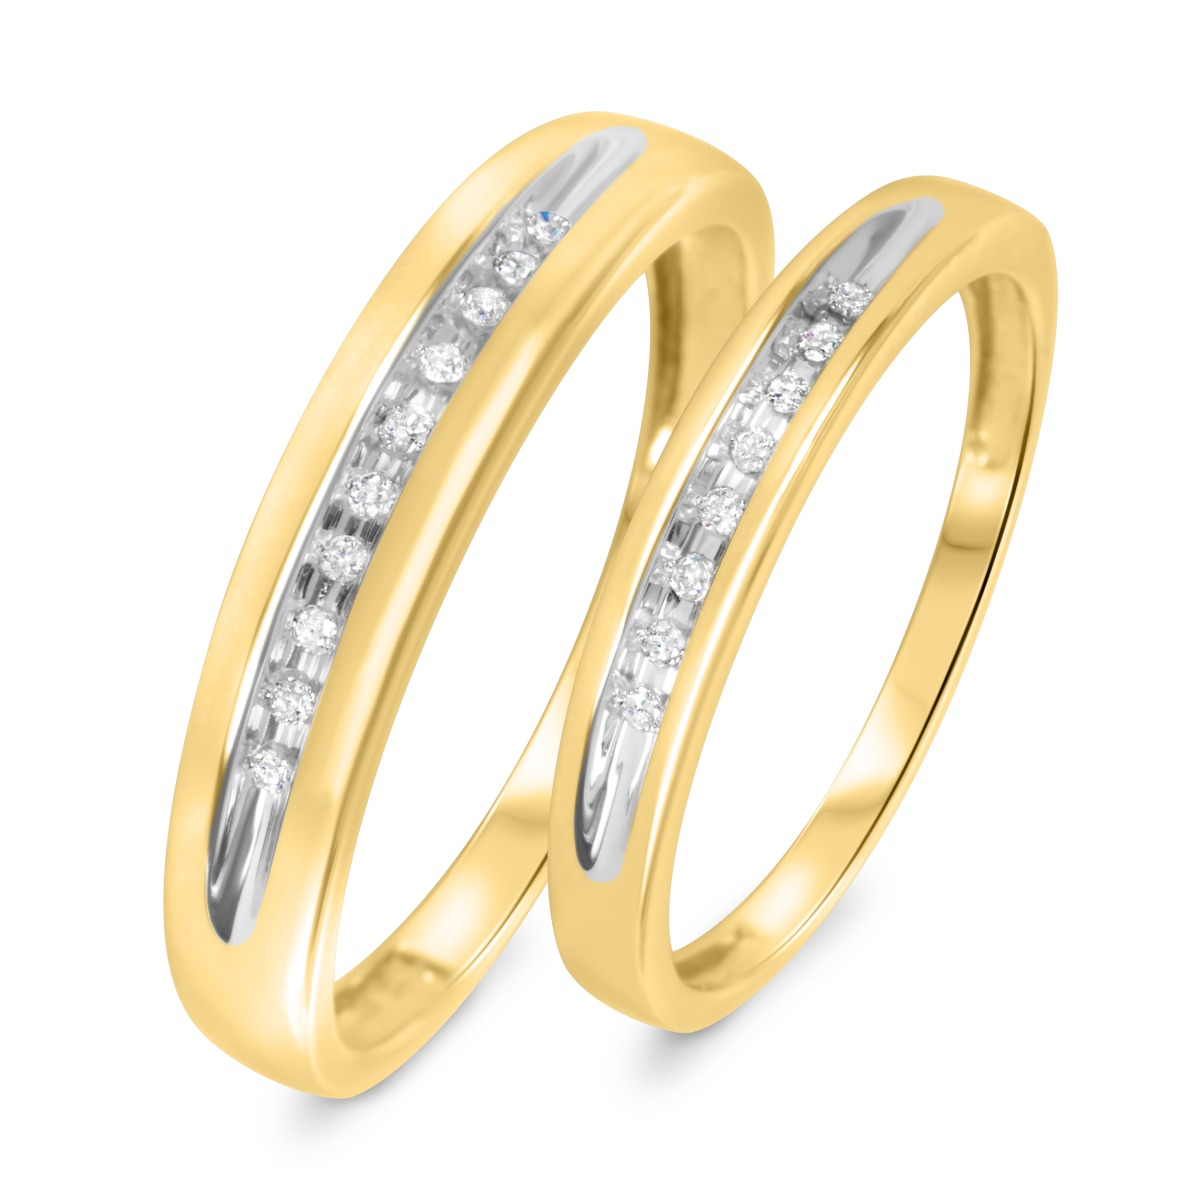 1/10 Carat T.W. Diamond His And Hers Wedding Rings 14K Yellow Gold